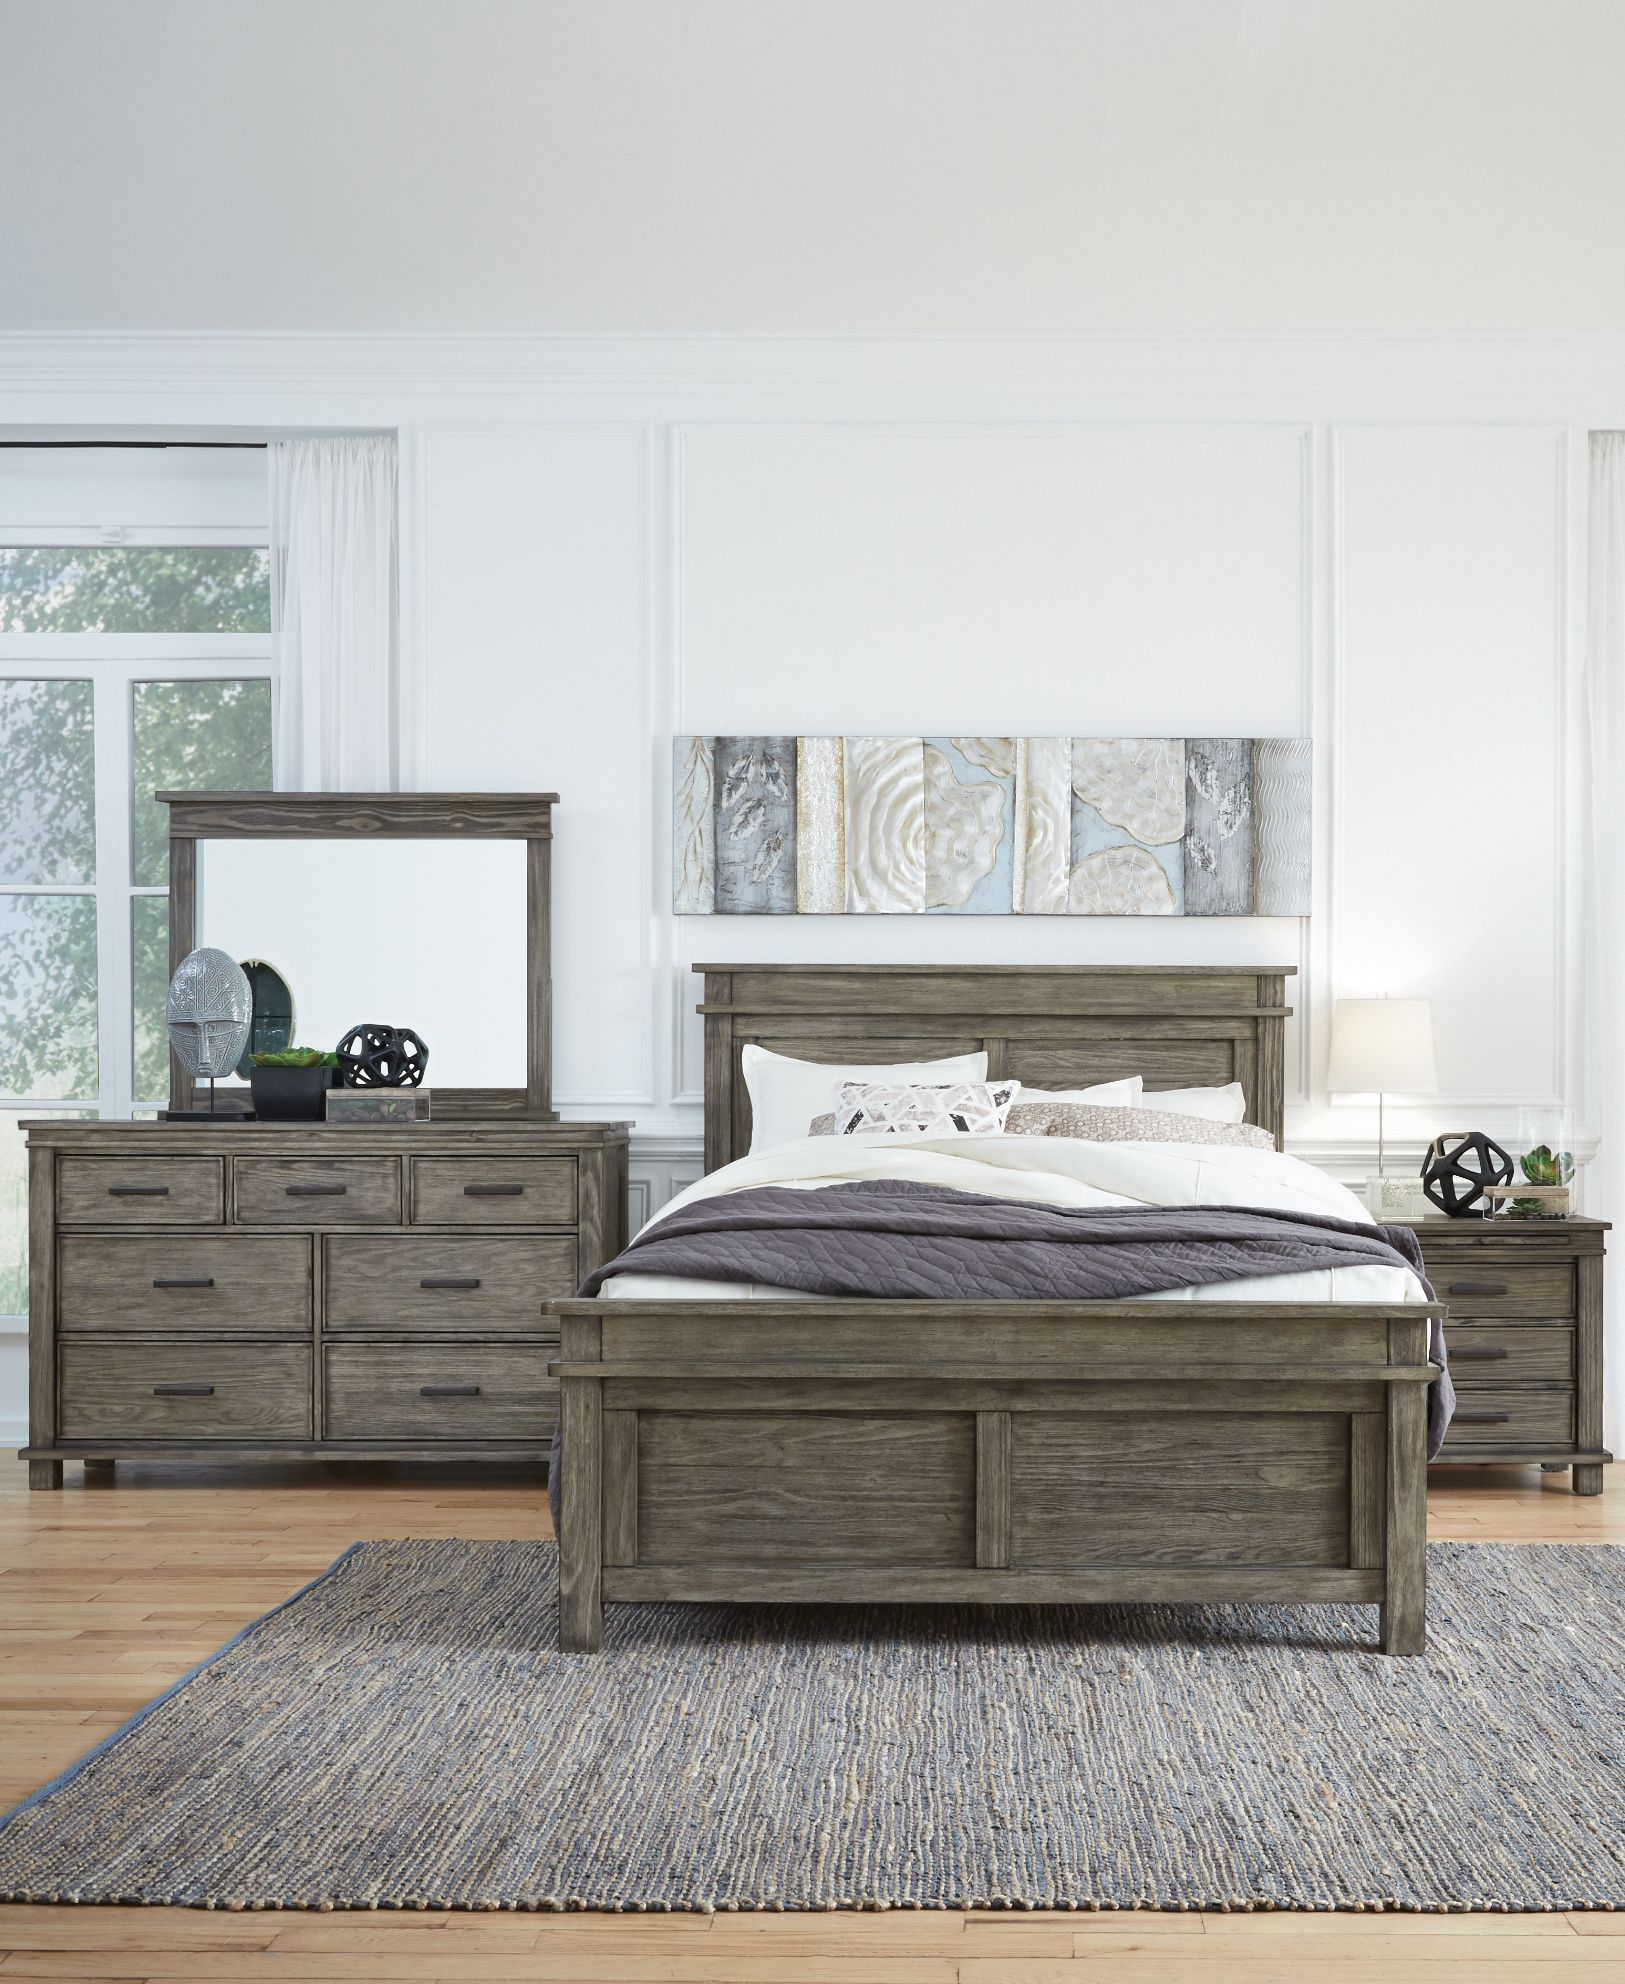 Soothing Tones In The Bedroom Furniture Modern Bedroom Furniture Mattress Furniture